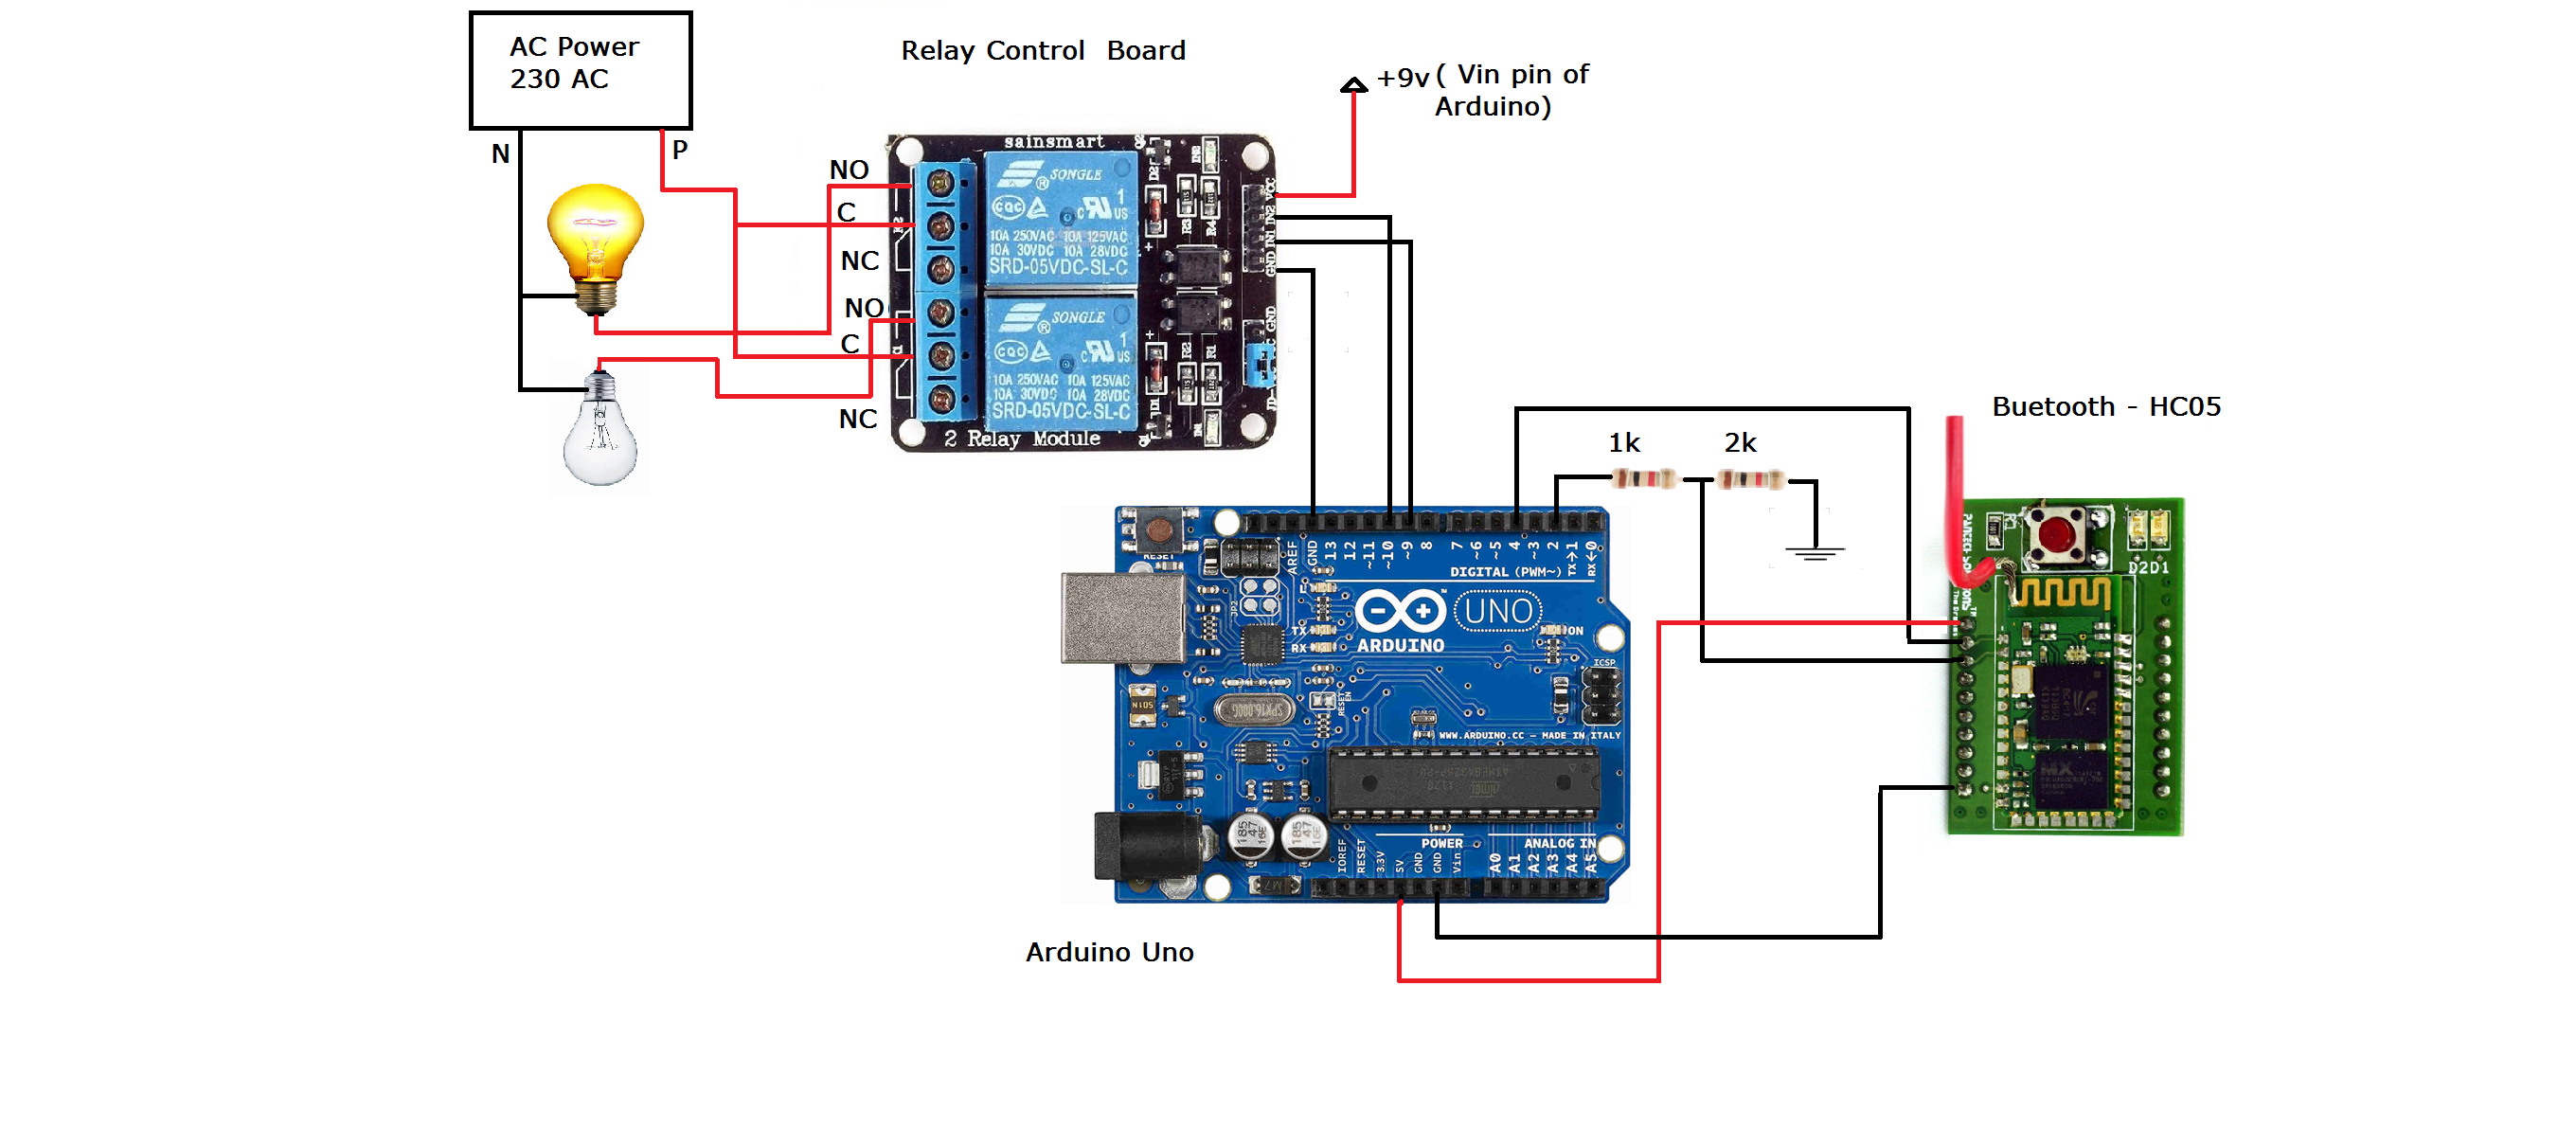 Astounding Arduino Based Home Automation Wiring Cloud Overrenstrafr09Org